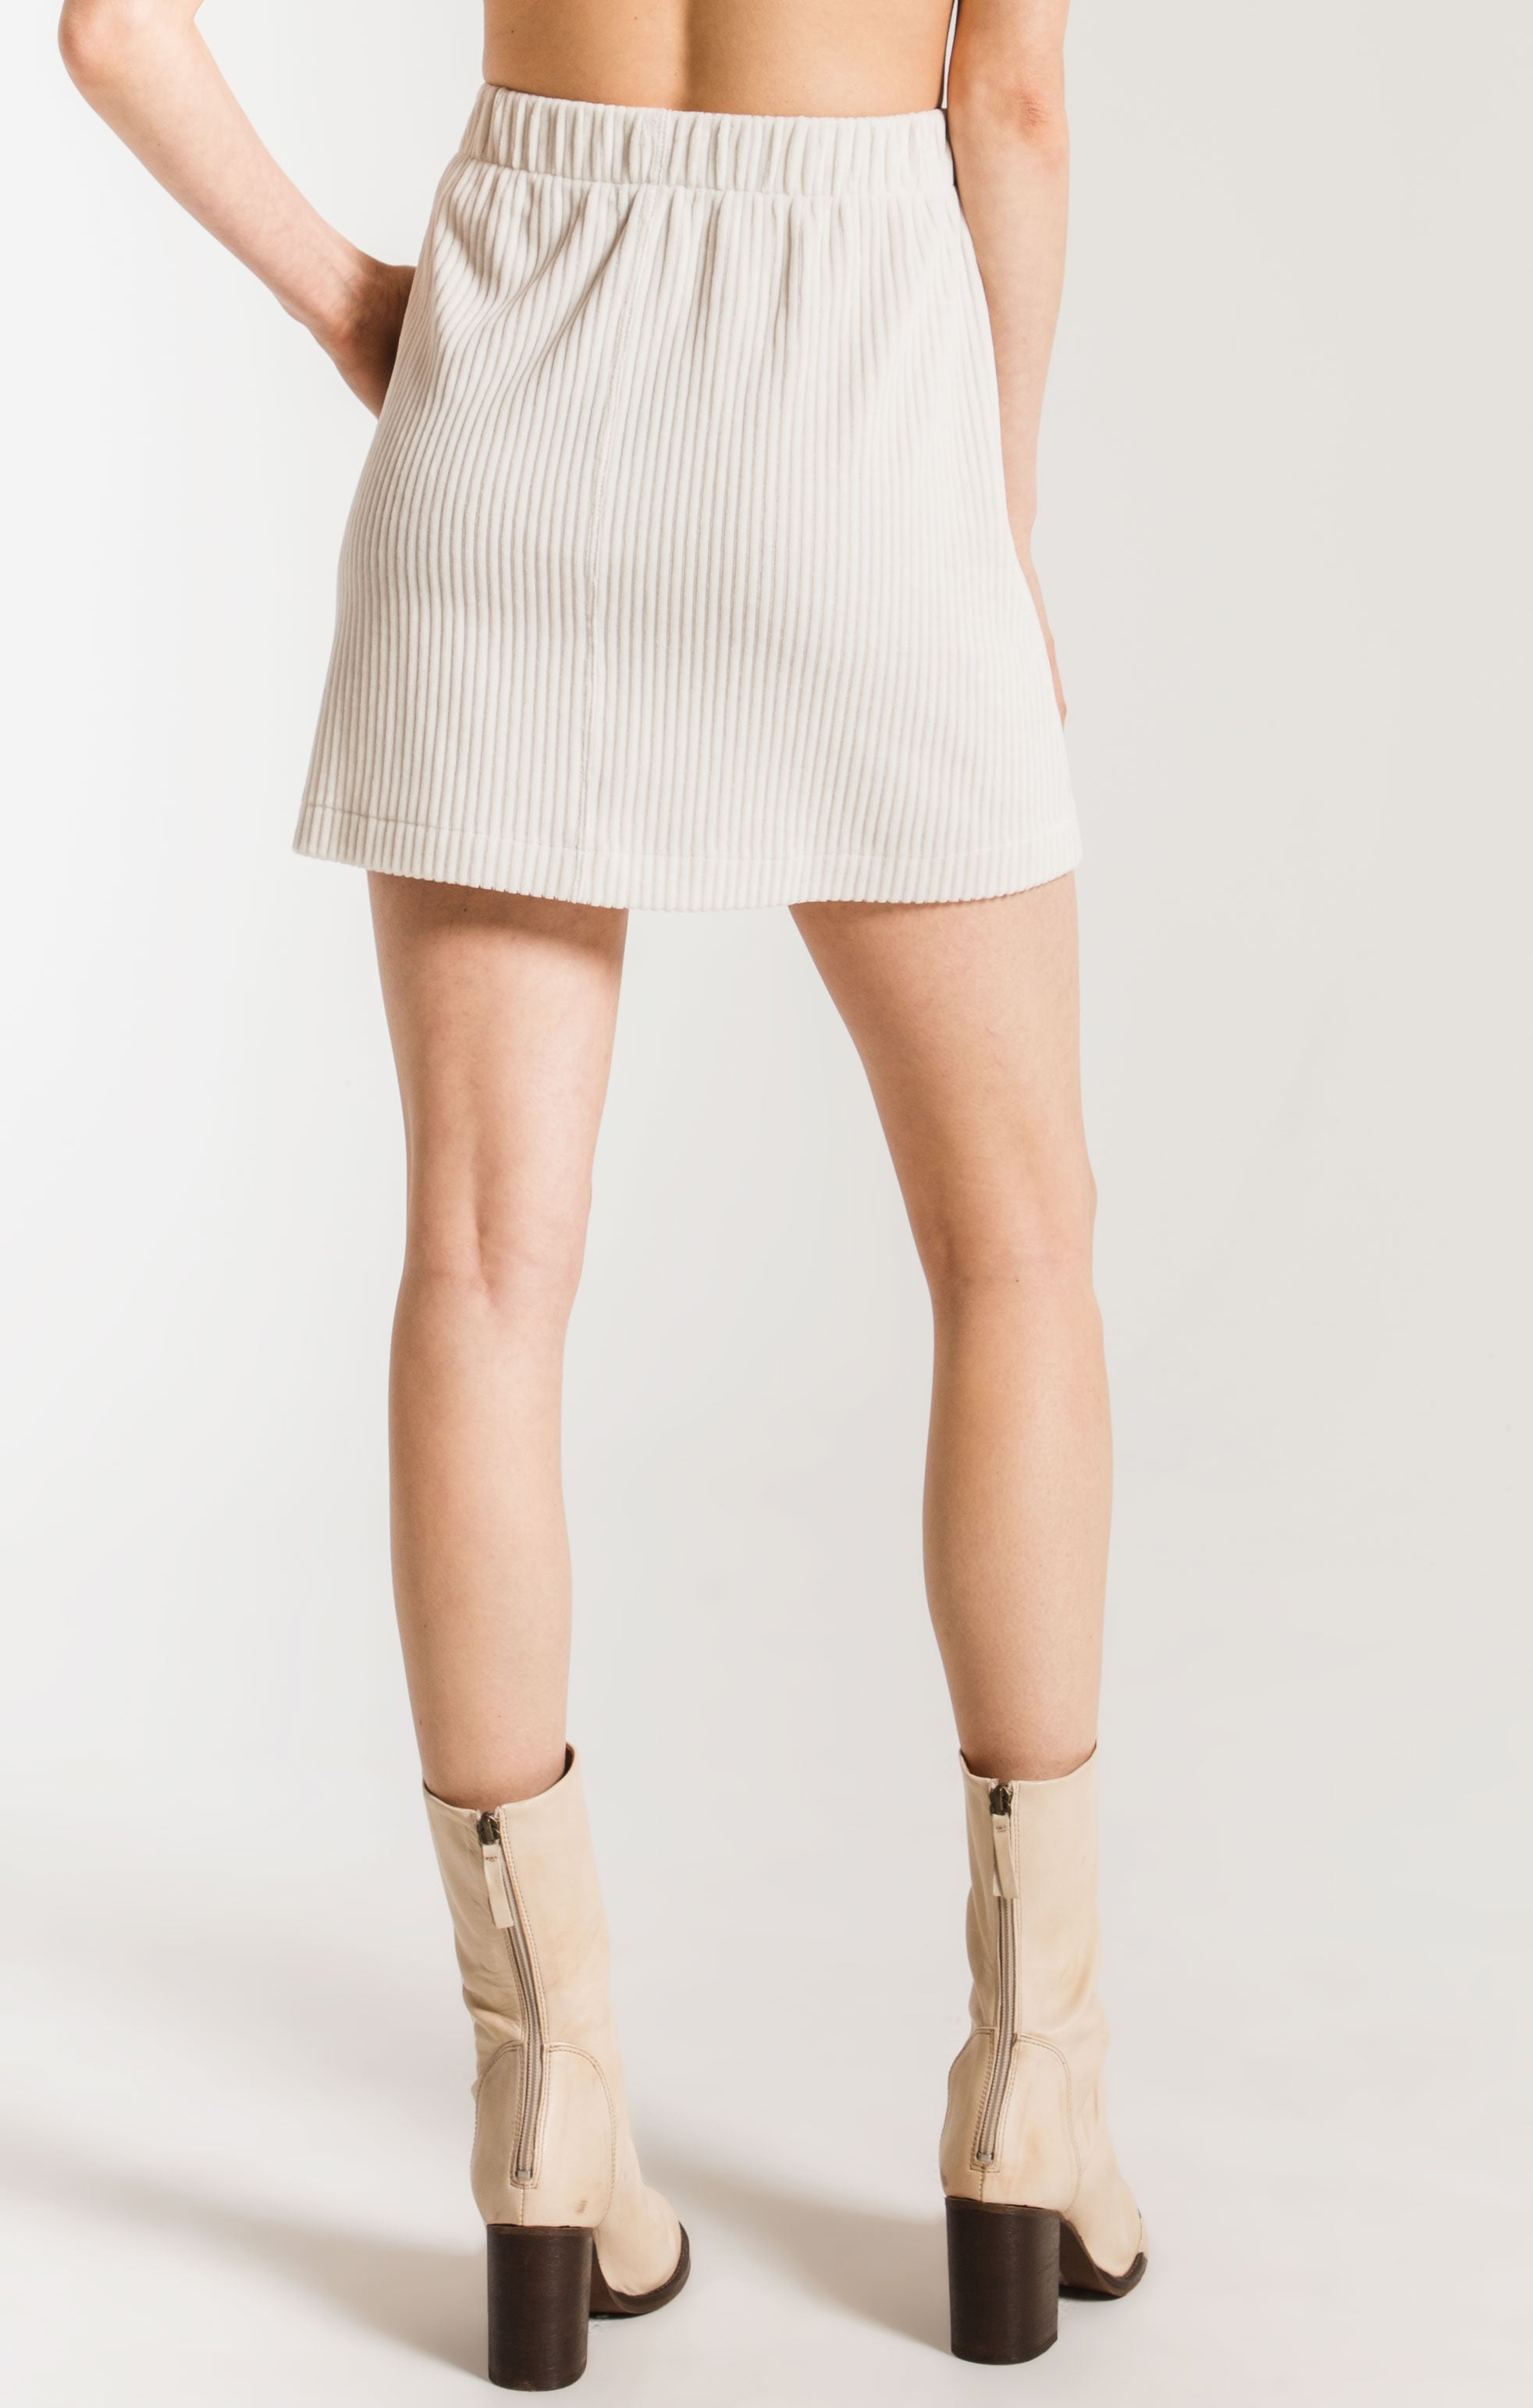 Skirts The Knit Corduroy Skirt Champagne Mist